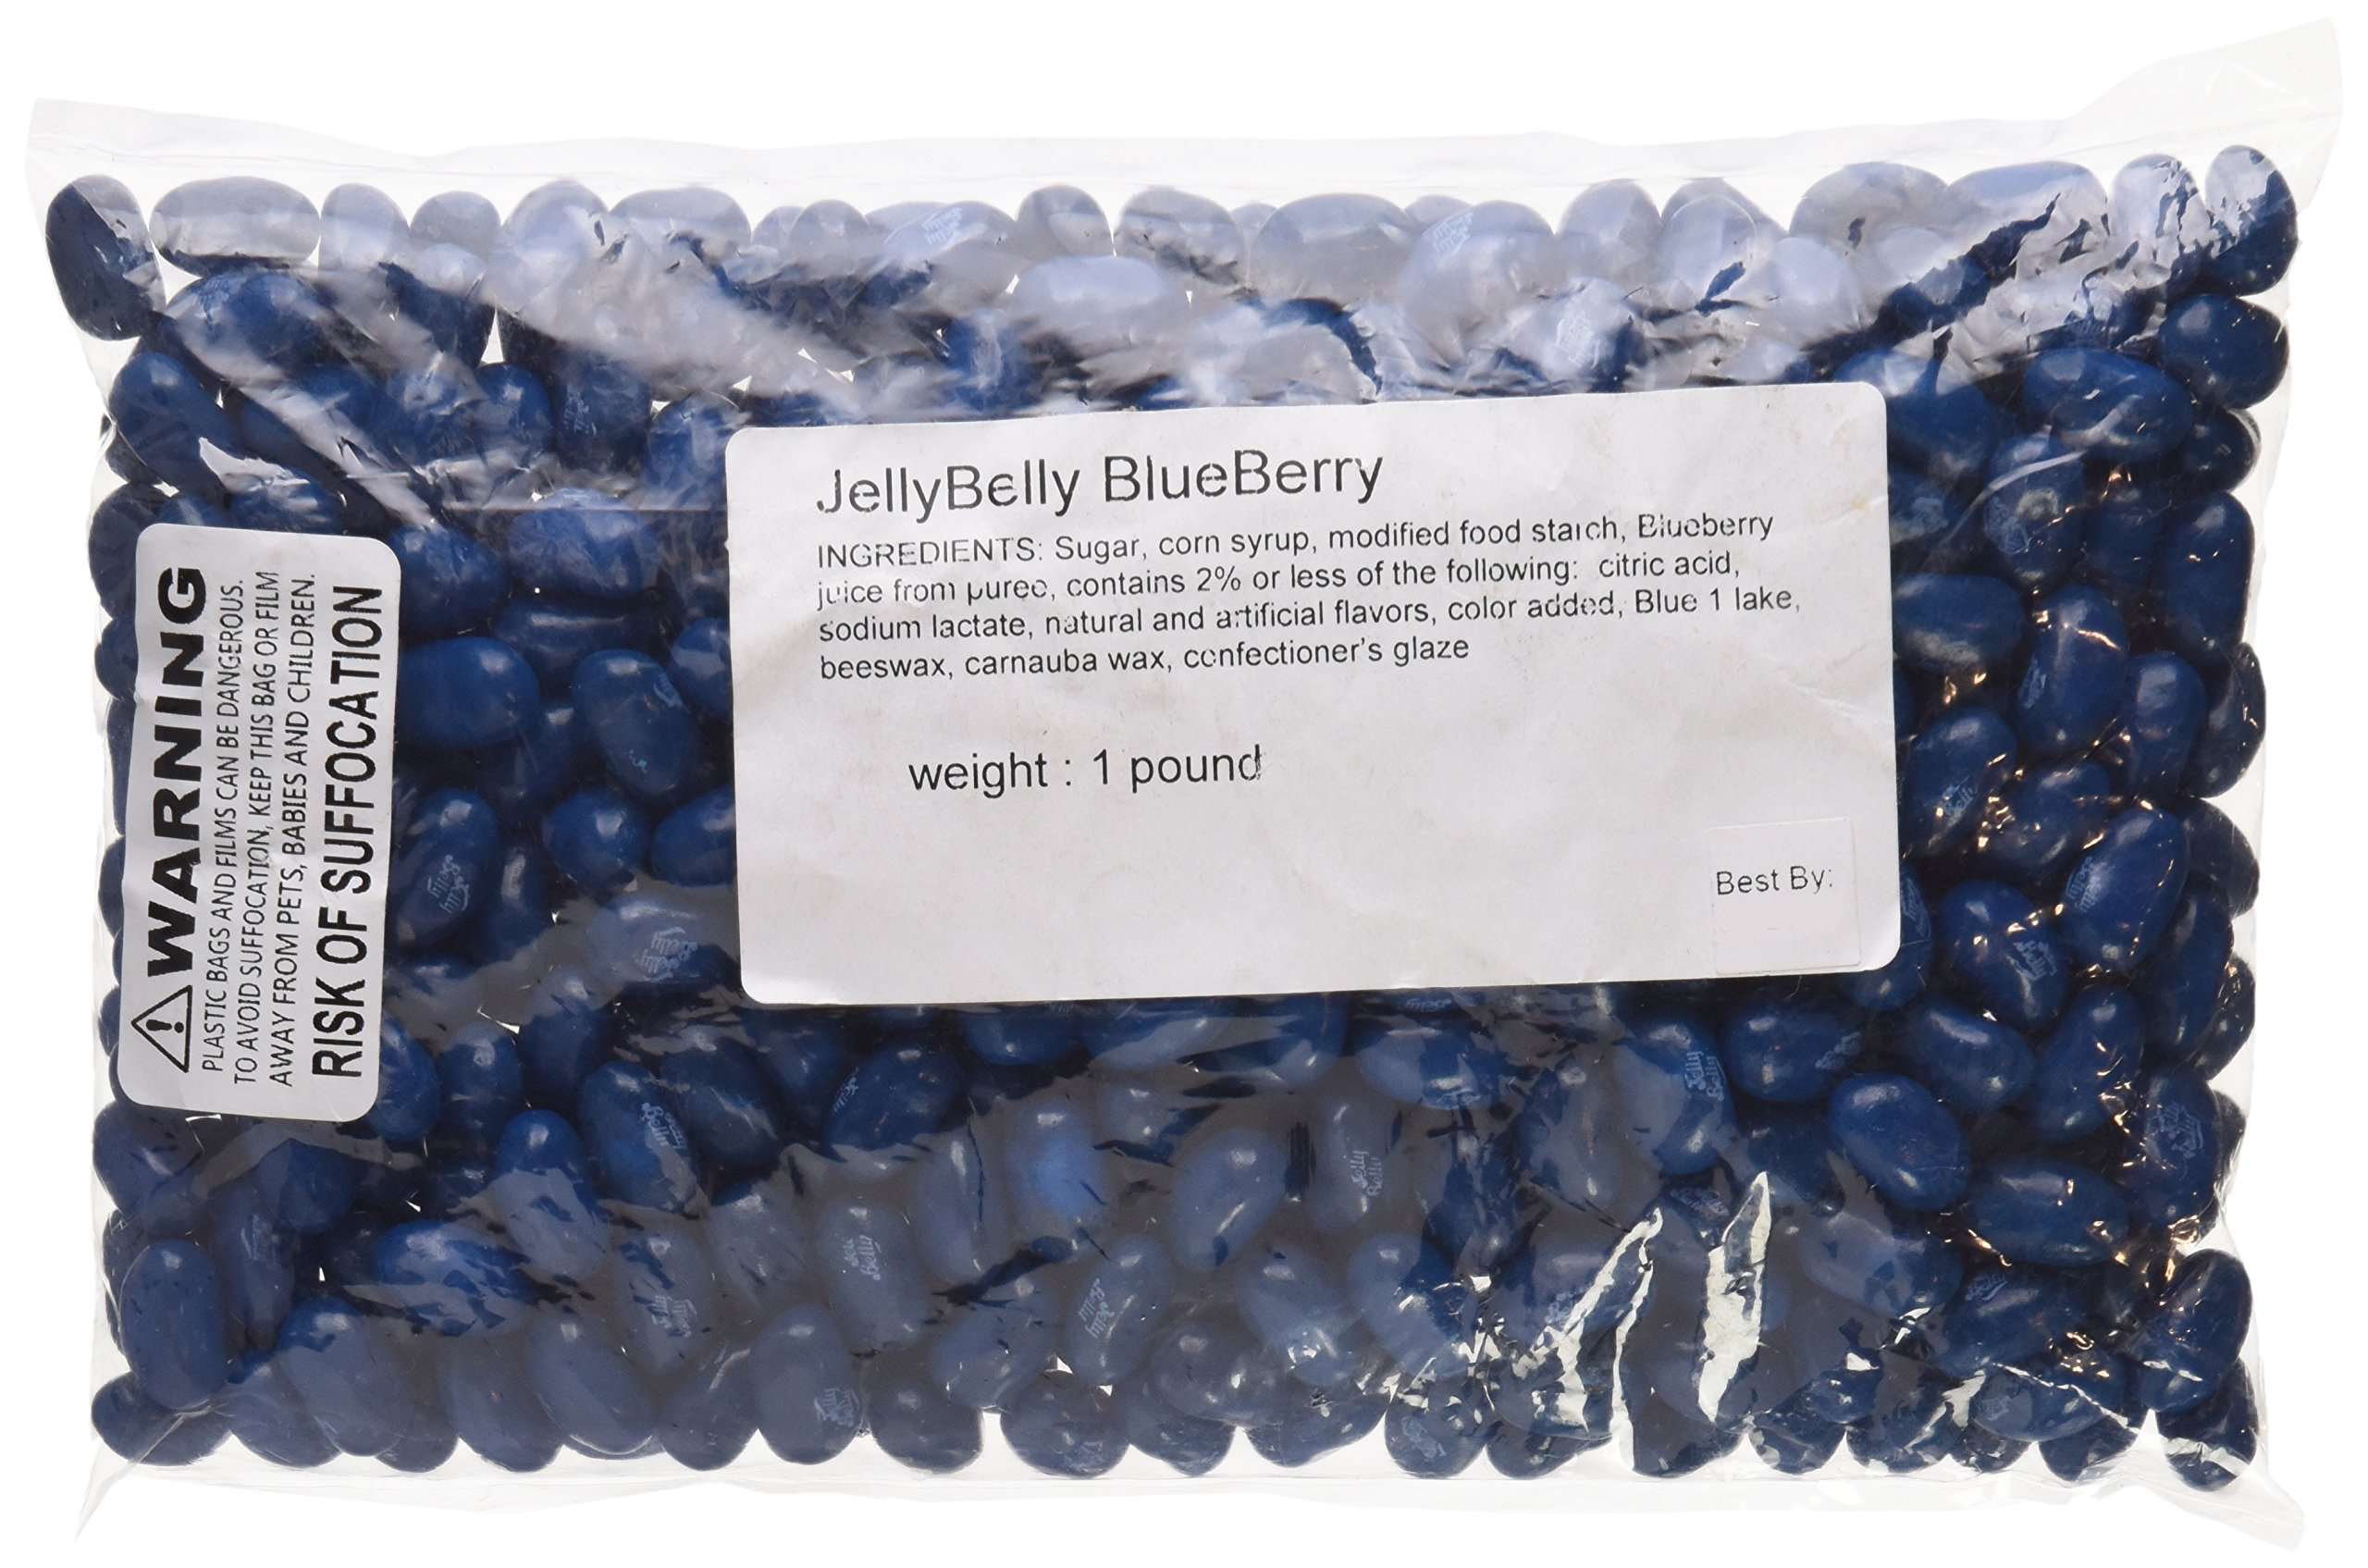 Jelly Belly Blueberry Jelly Beans 1LB (Pound Bag) by Jelly Belly (Image #1)